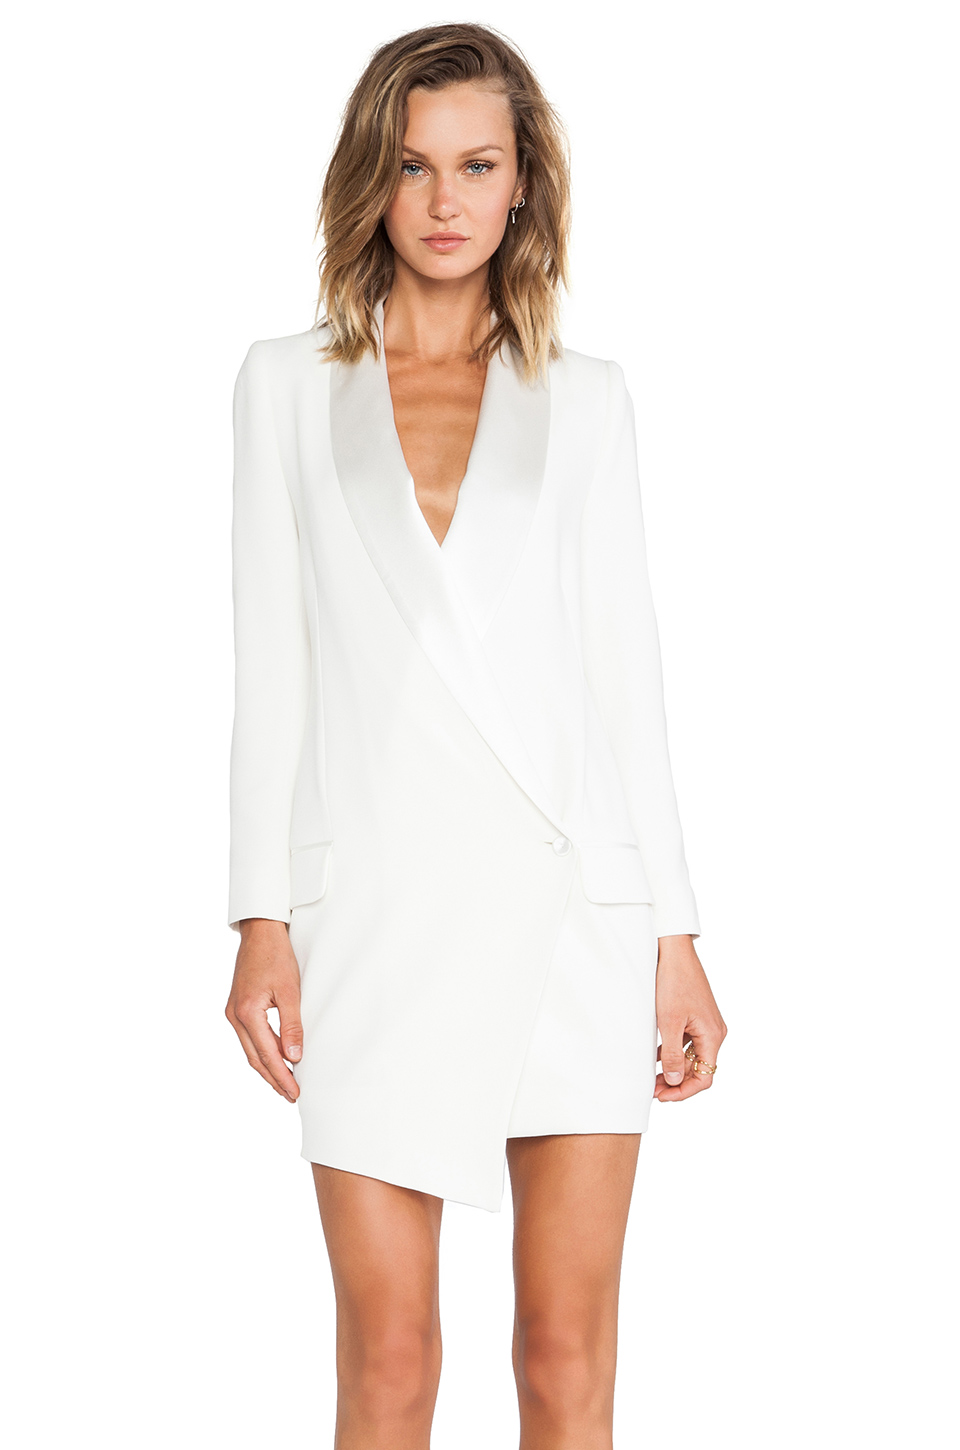 Haute hippie oversized asymmetrical blazer dress in antique ivory from revolveclothing.com